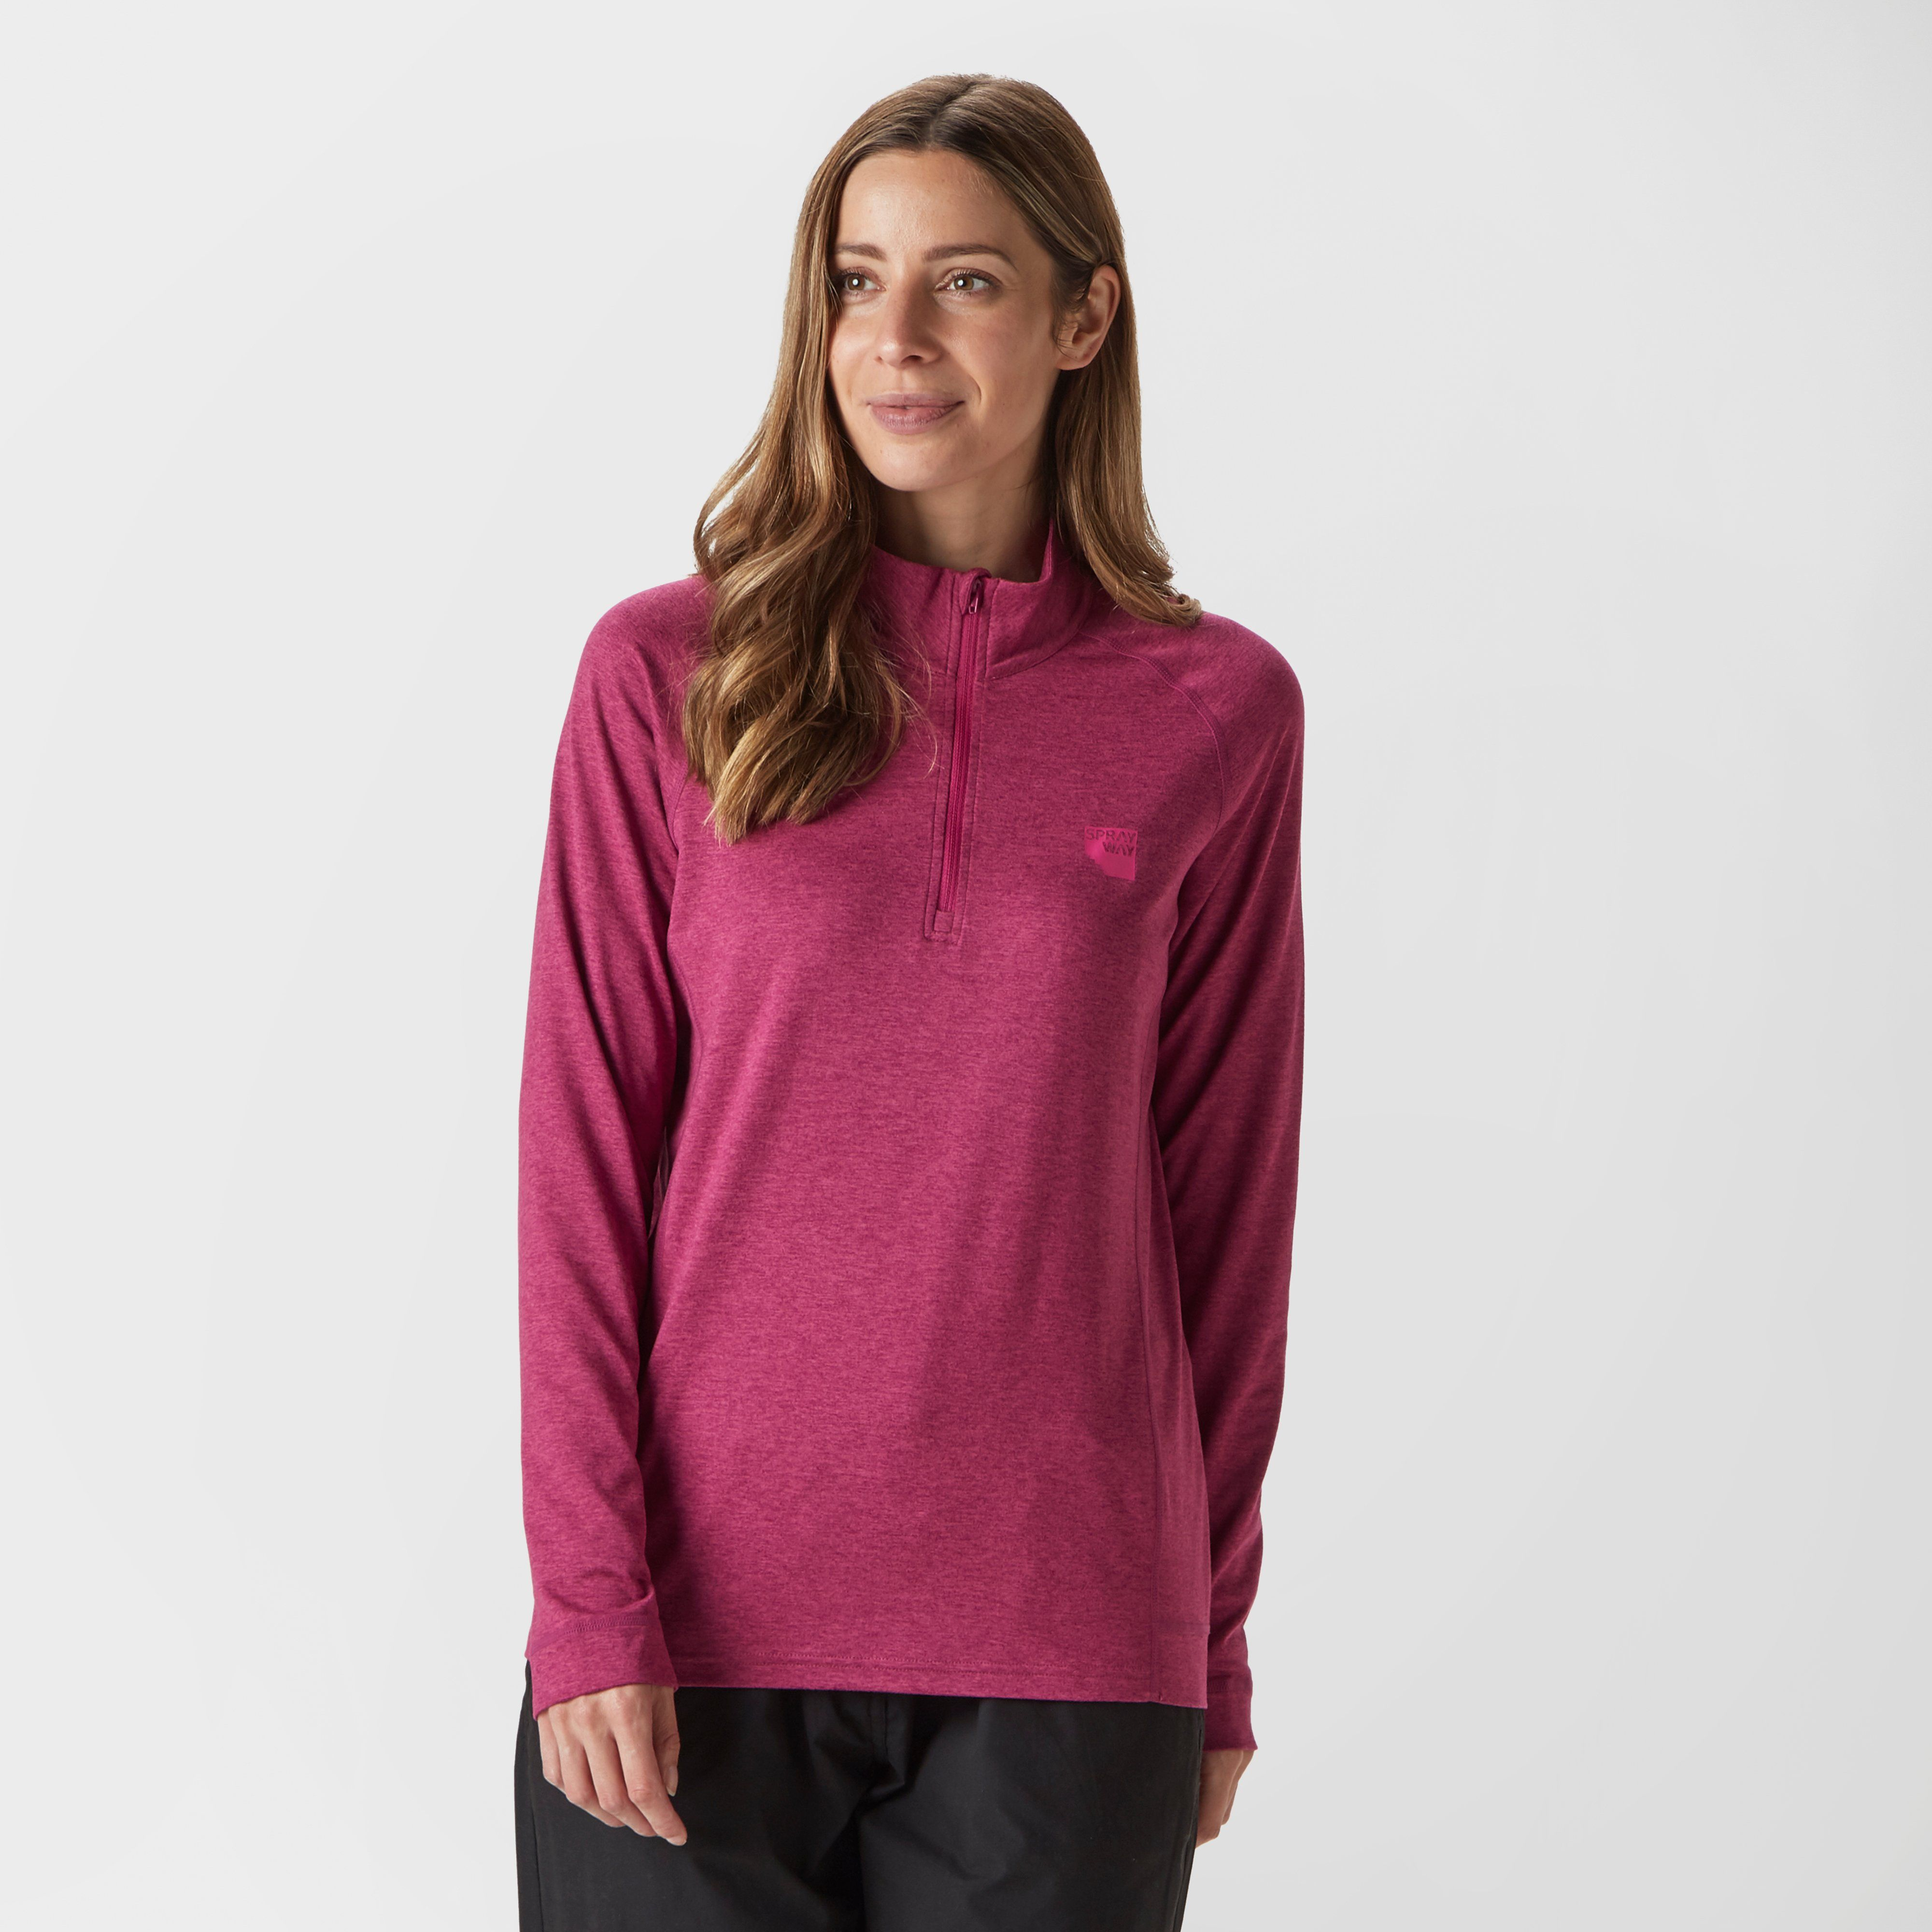 SPRAYWAY Women's Tiana Quarter-Zip Fleece